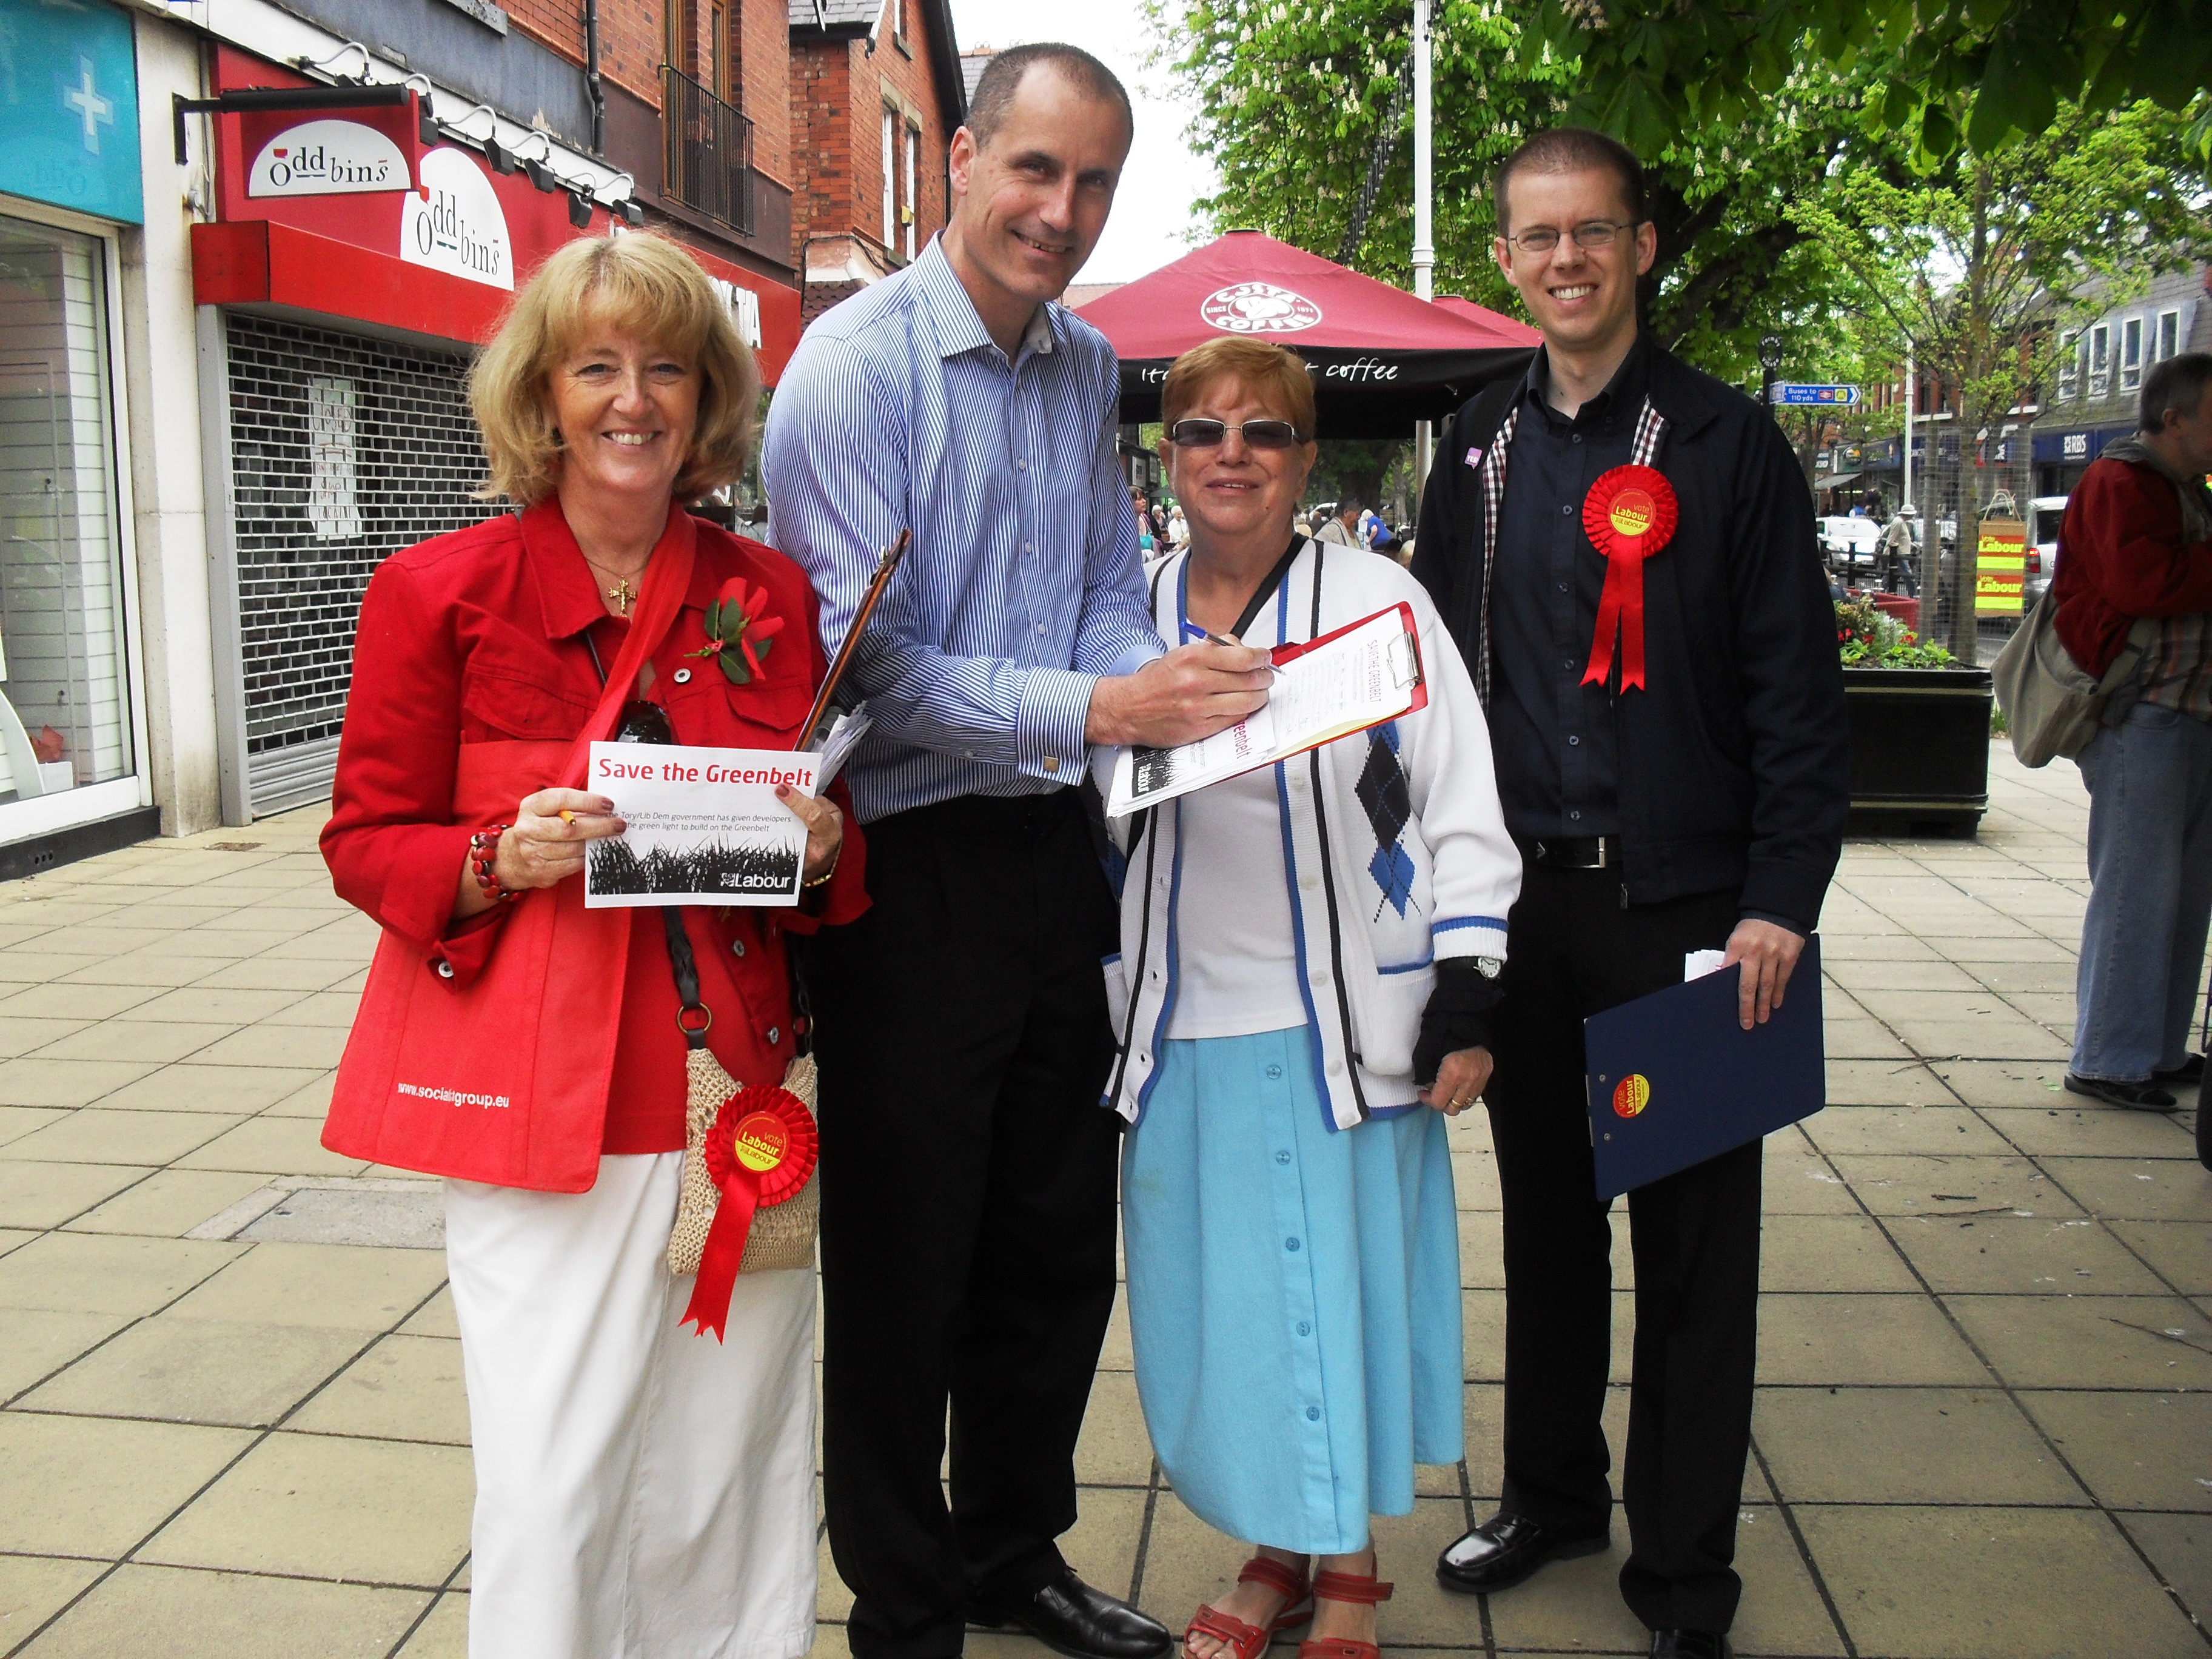 Sefton Central Labour MP Bill Esterson with Labour candidates Catie Page, Diane Roberts and Ben Bentley collecting names for the greenbelt petition in Formby Village.